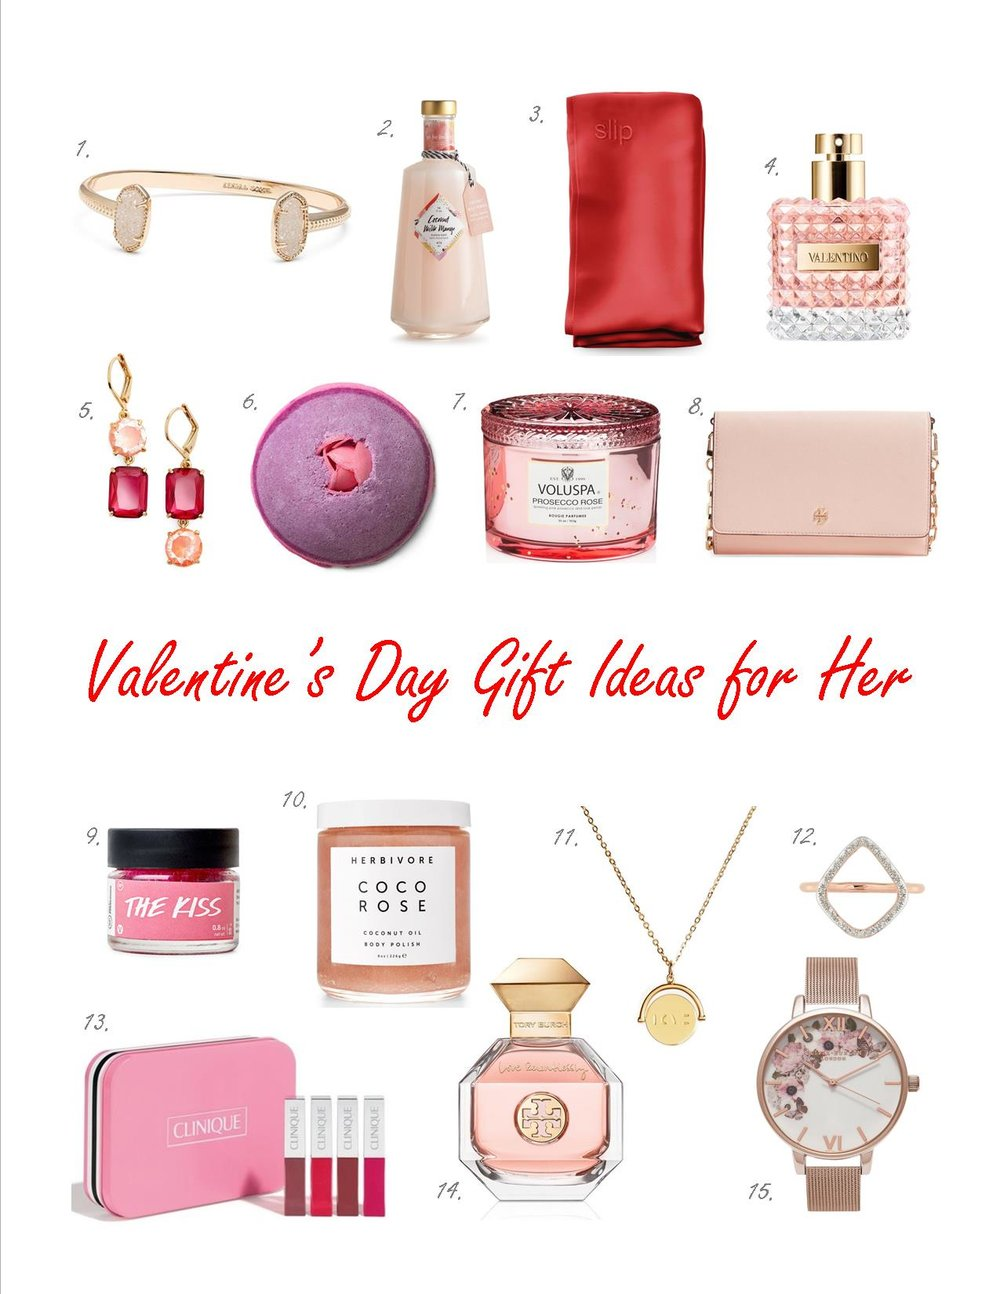 Vday Gift Ideas Her Collage.jpg